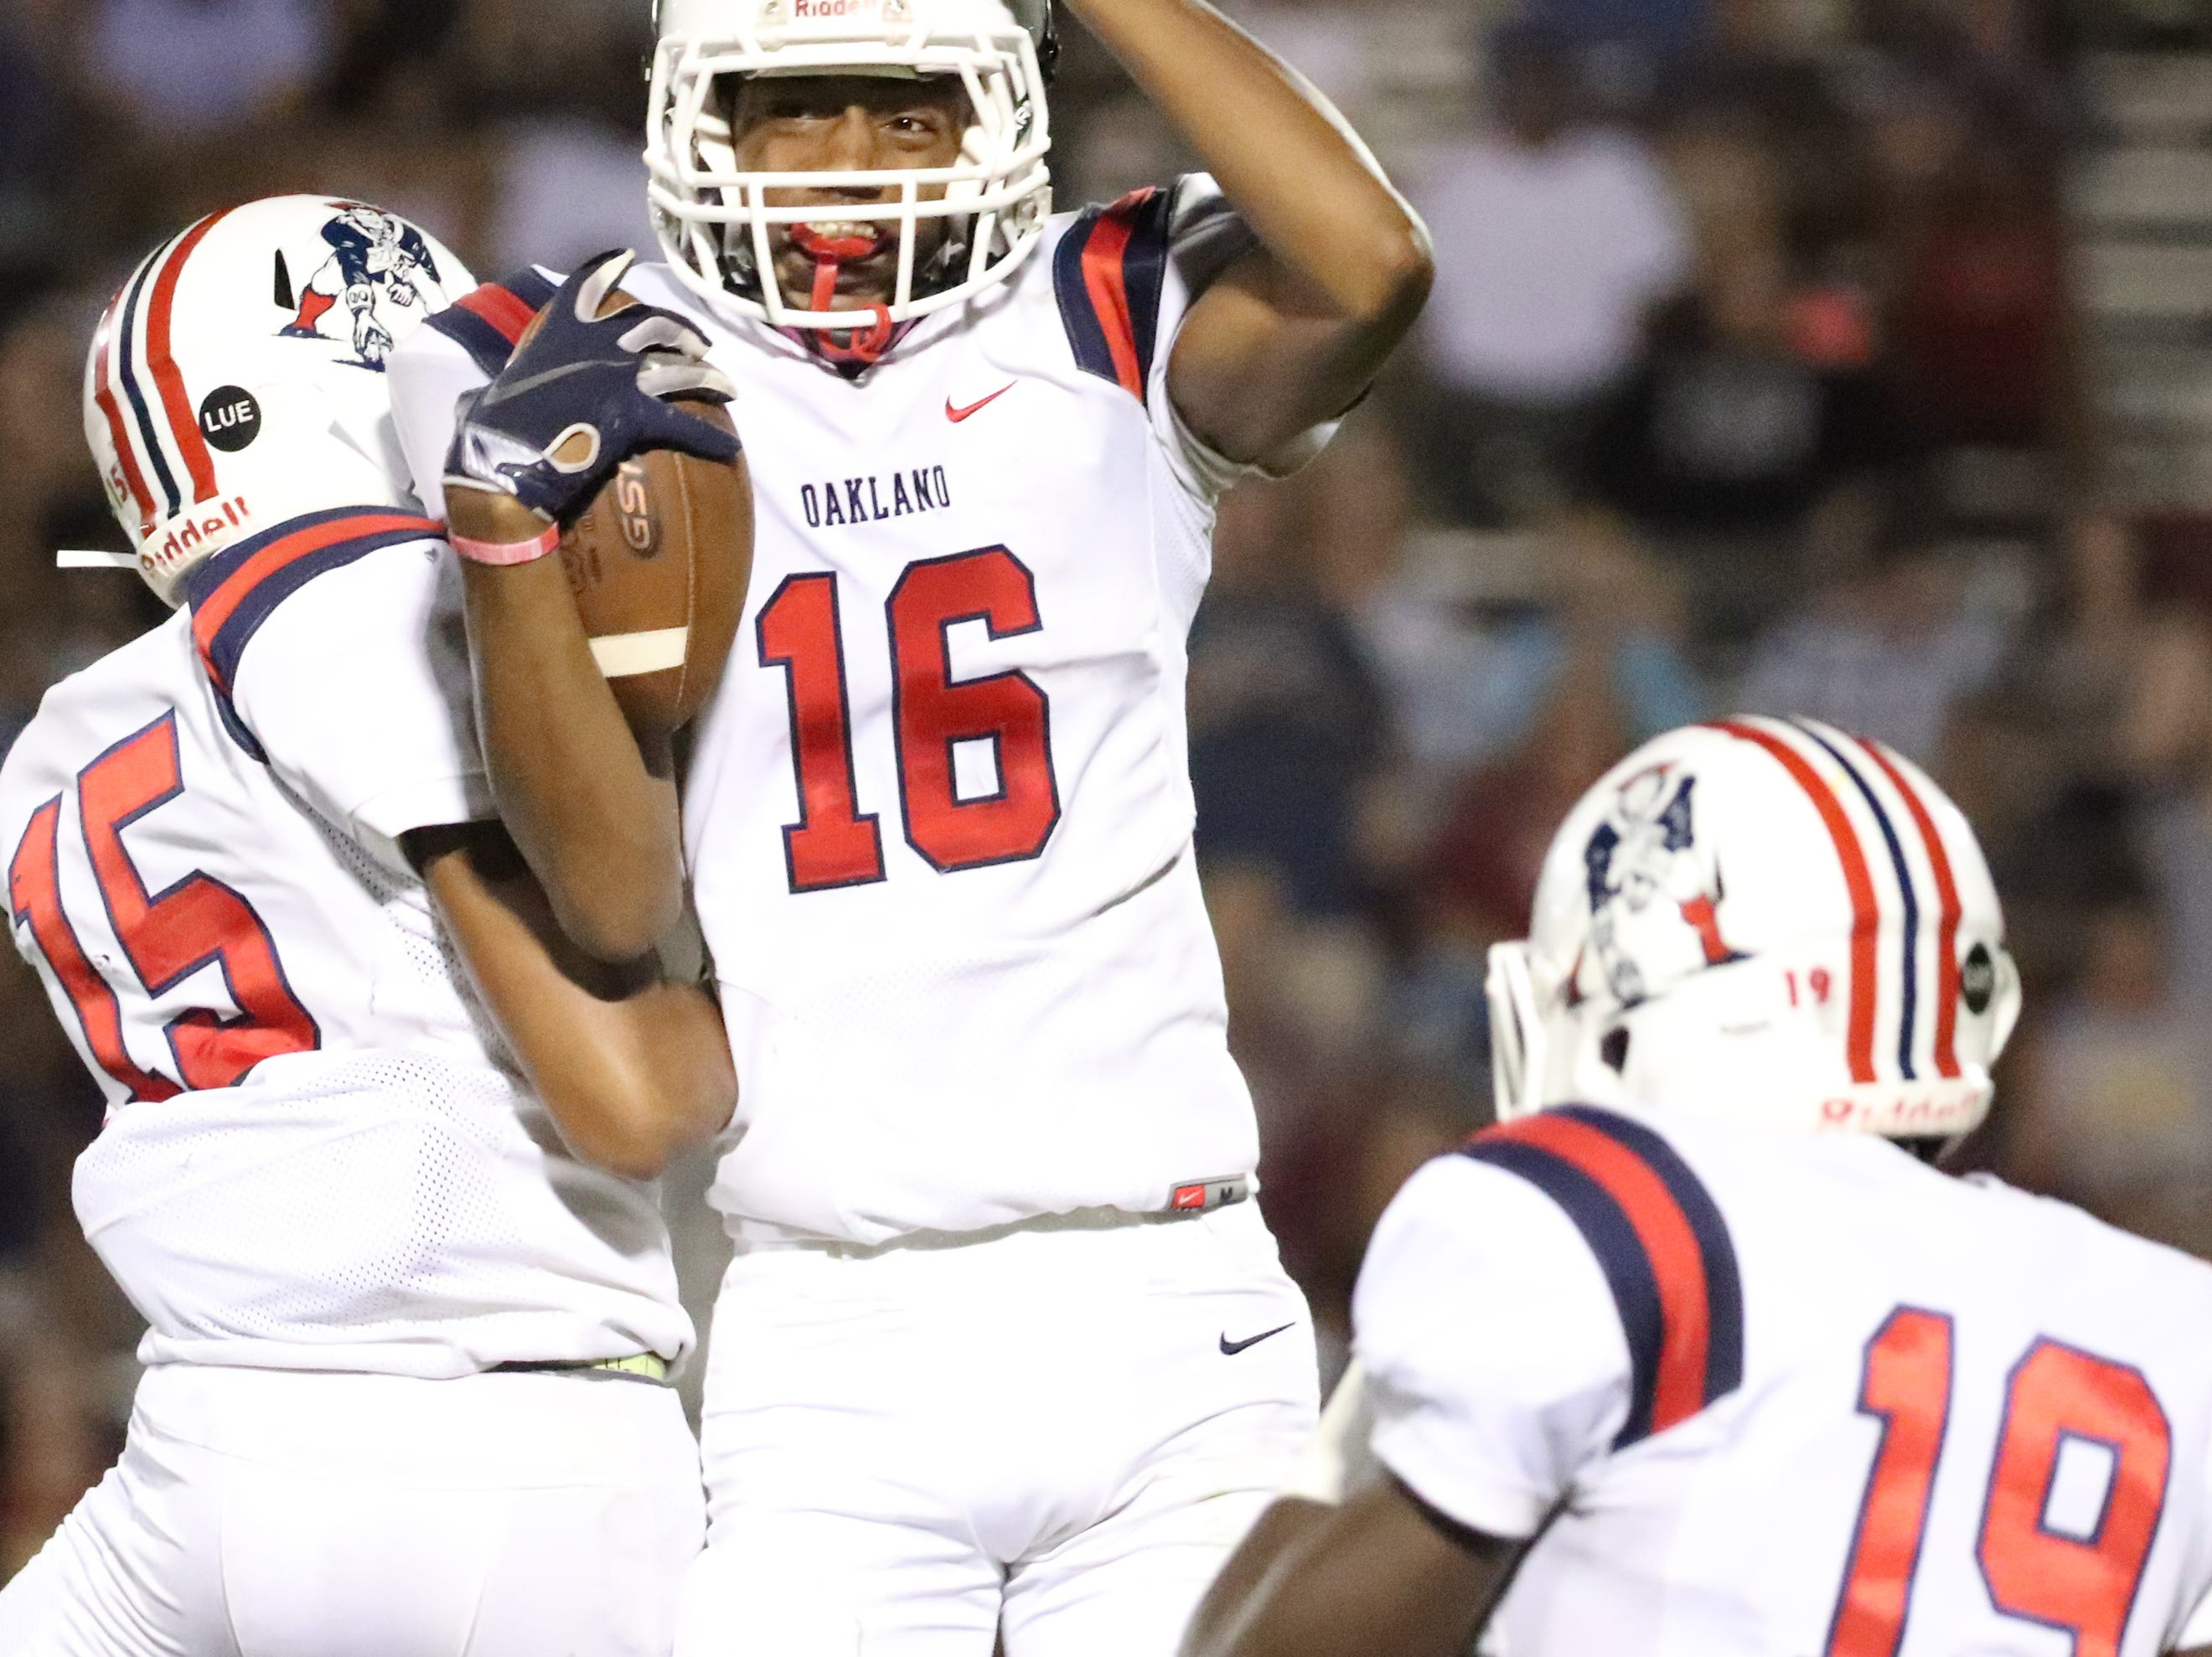 Oakland's DeDe Anderson(16) celebrates his interception against Oakland with Kobe Manning (15) at Riverdale during the Battle of the Boro on Friday, Sept. 14, 2018.